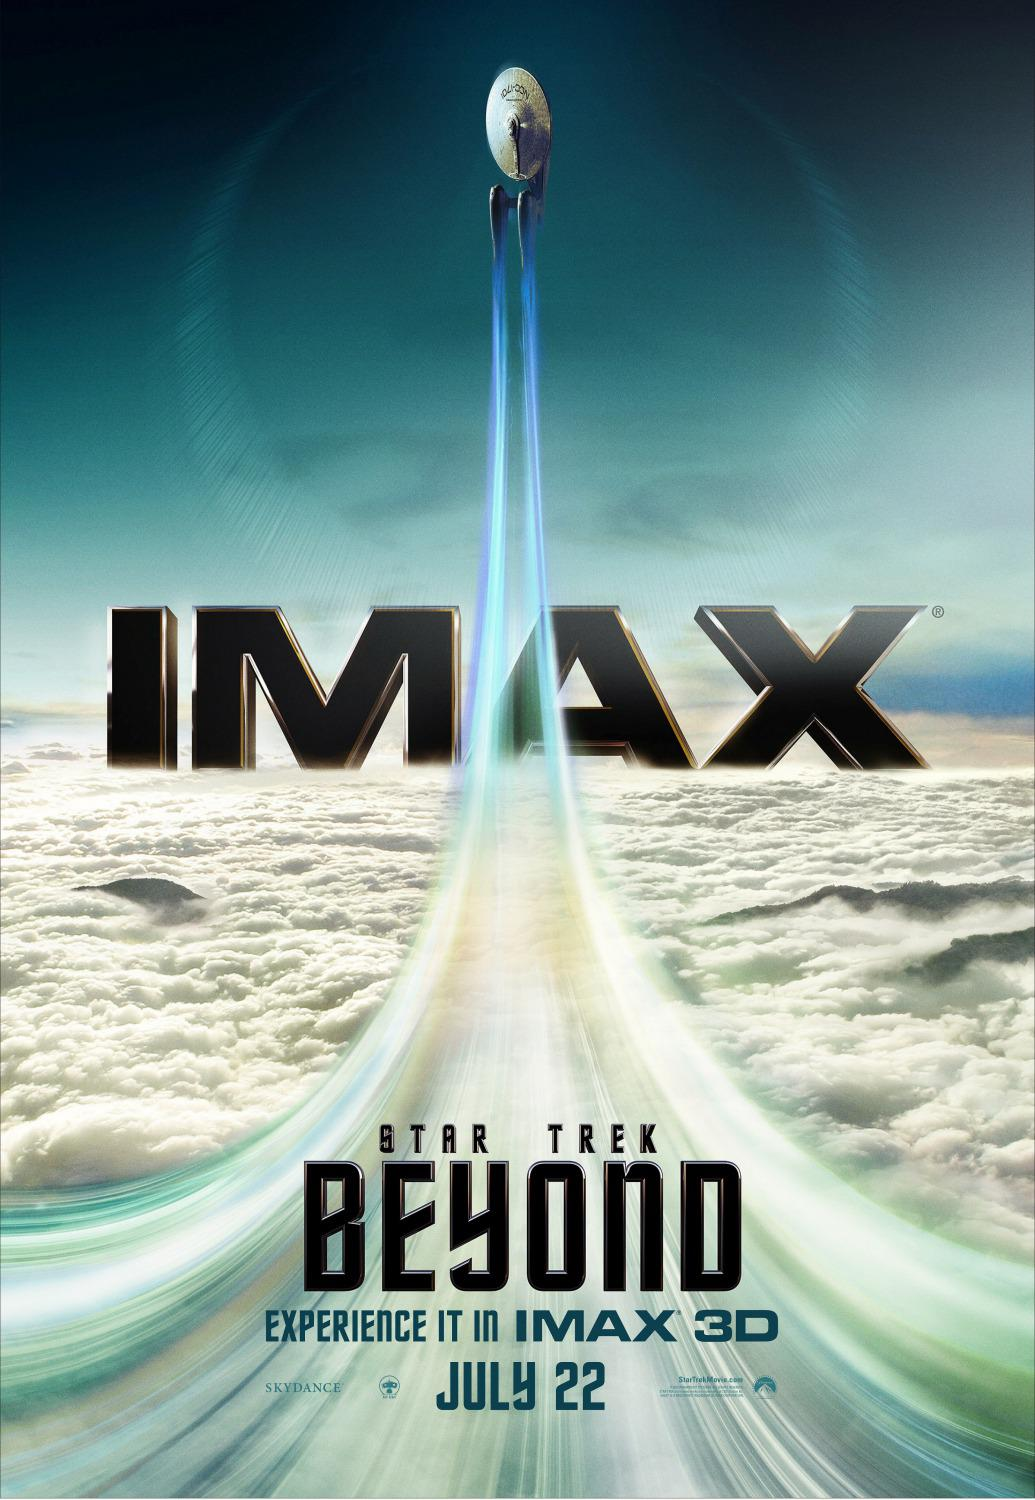 Film - Star Trek 13 - Beyond - poster - IMAX